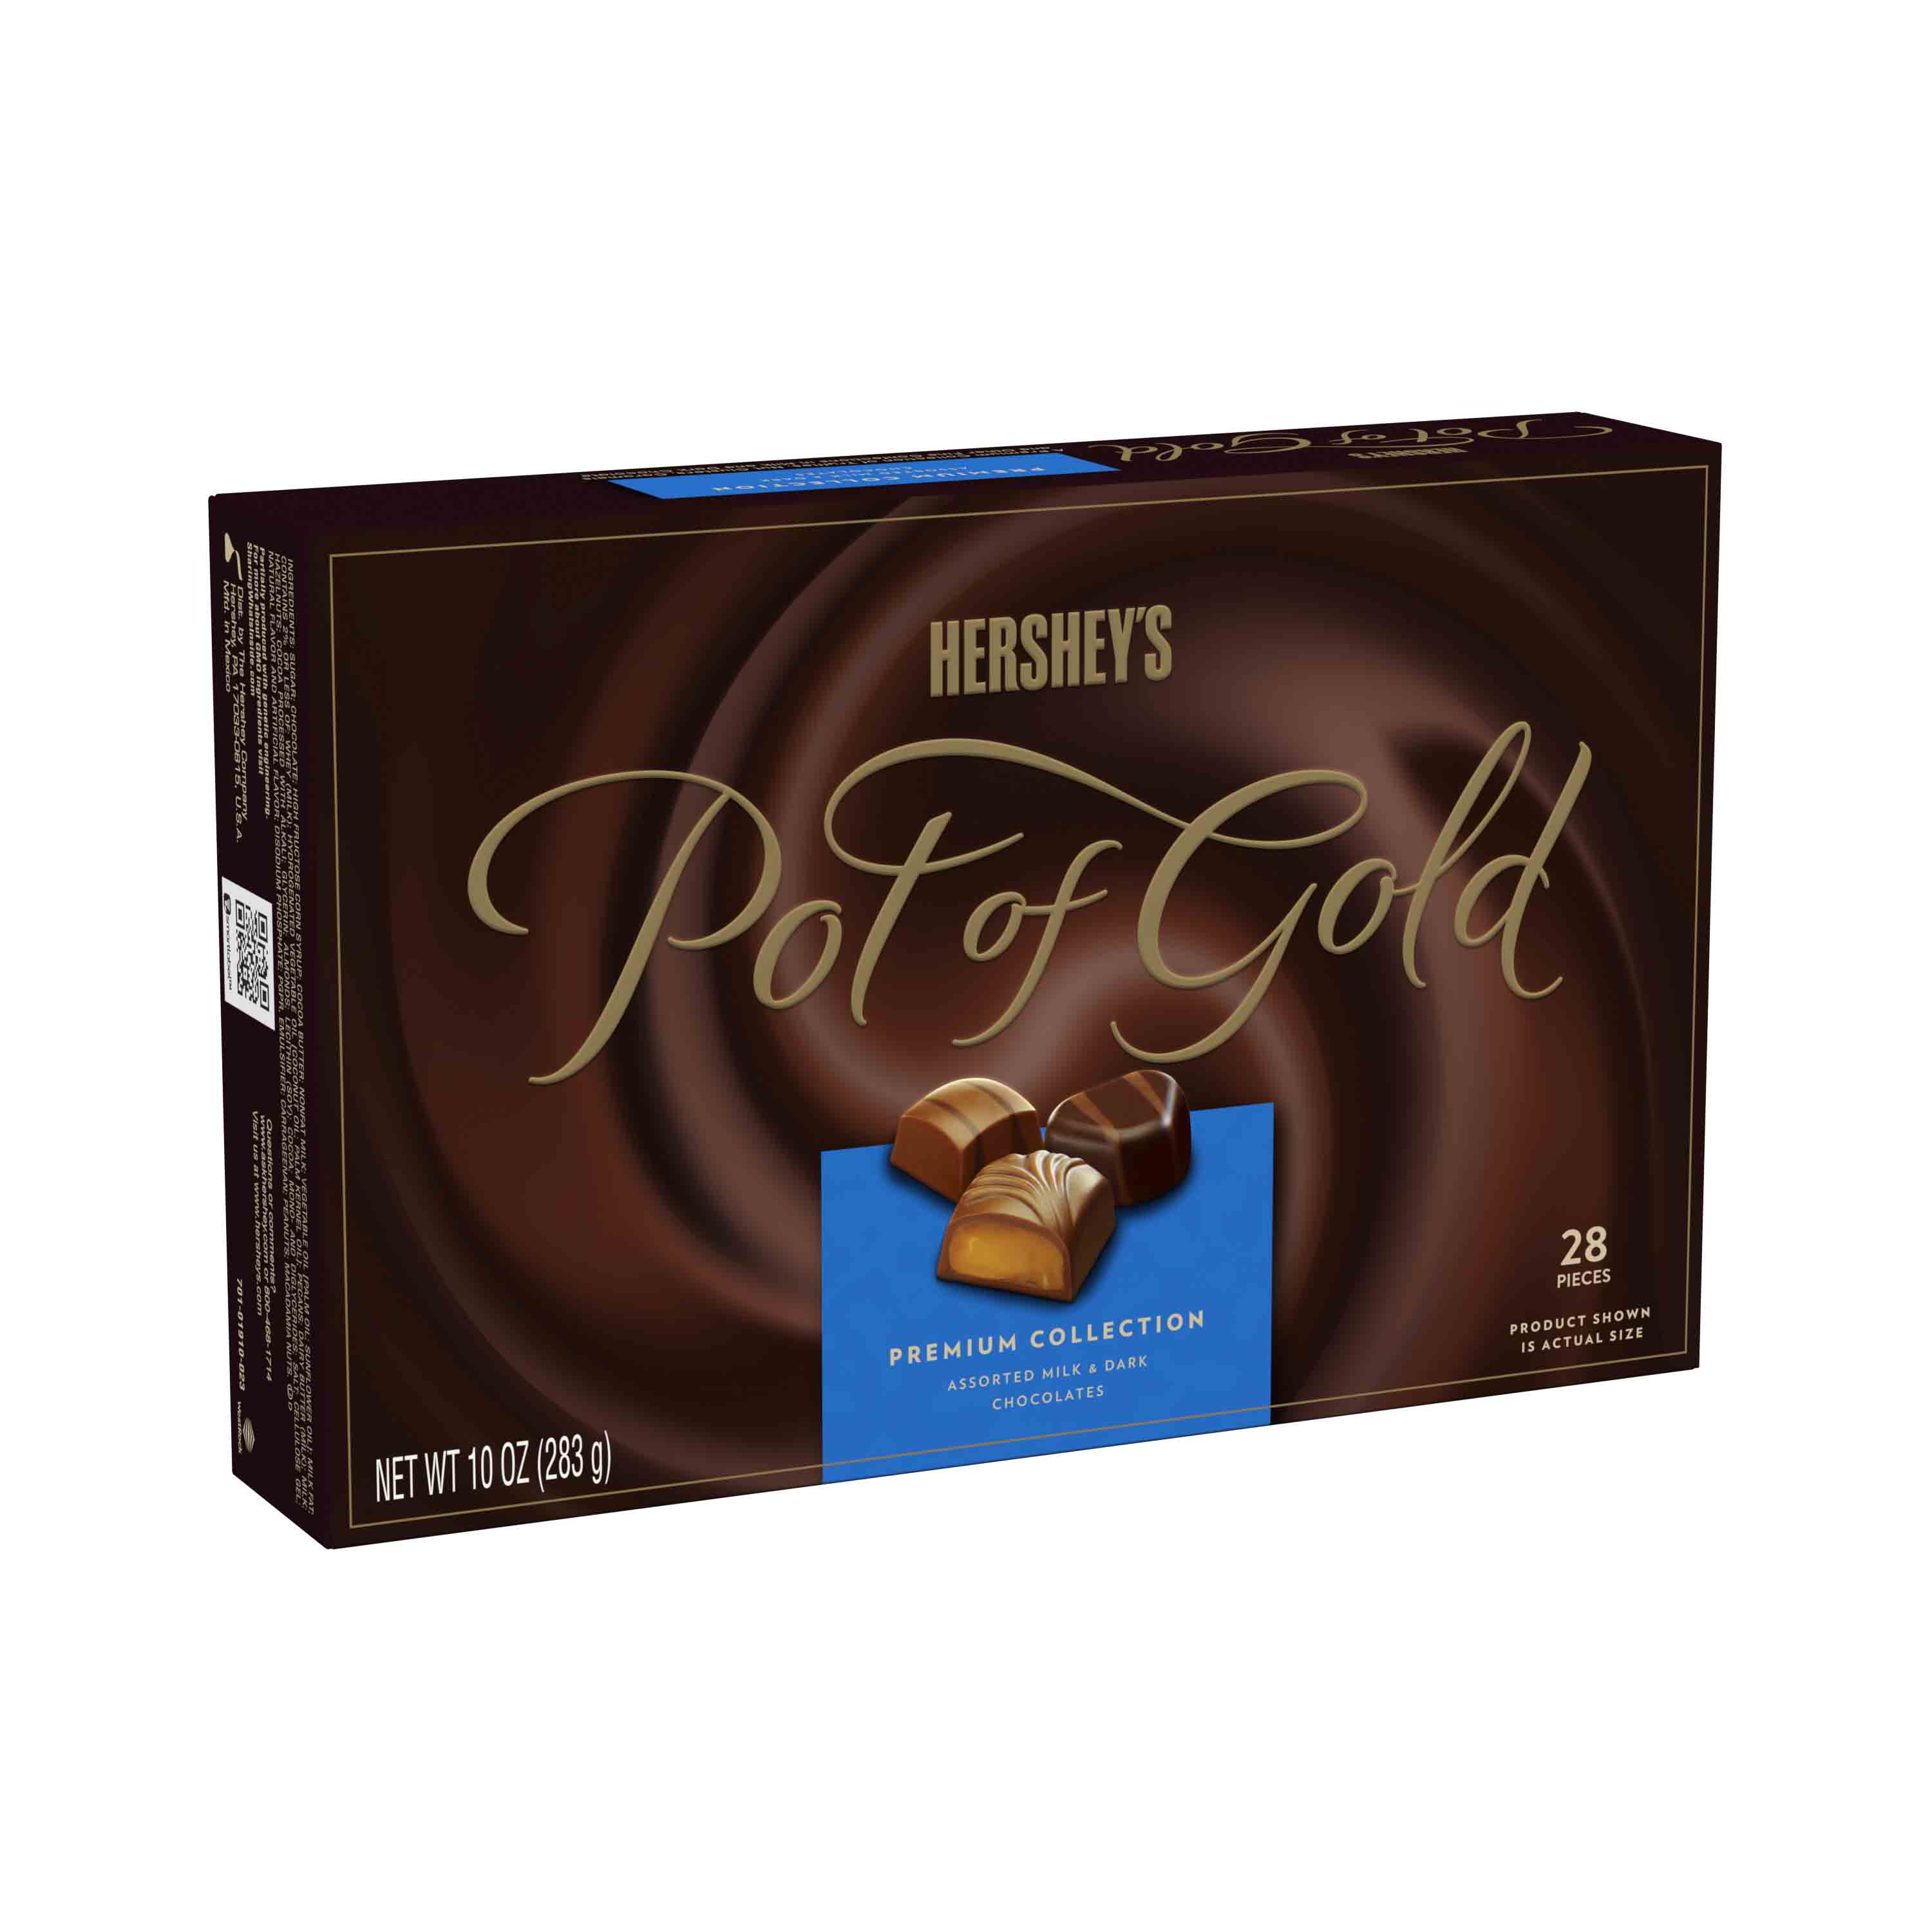 (2 Pack) Hershey's Pot of Gold, Assorted Chocolate Premium Collection, 10 Oz - Online Only